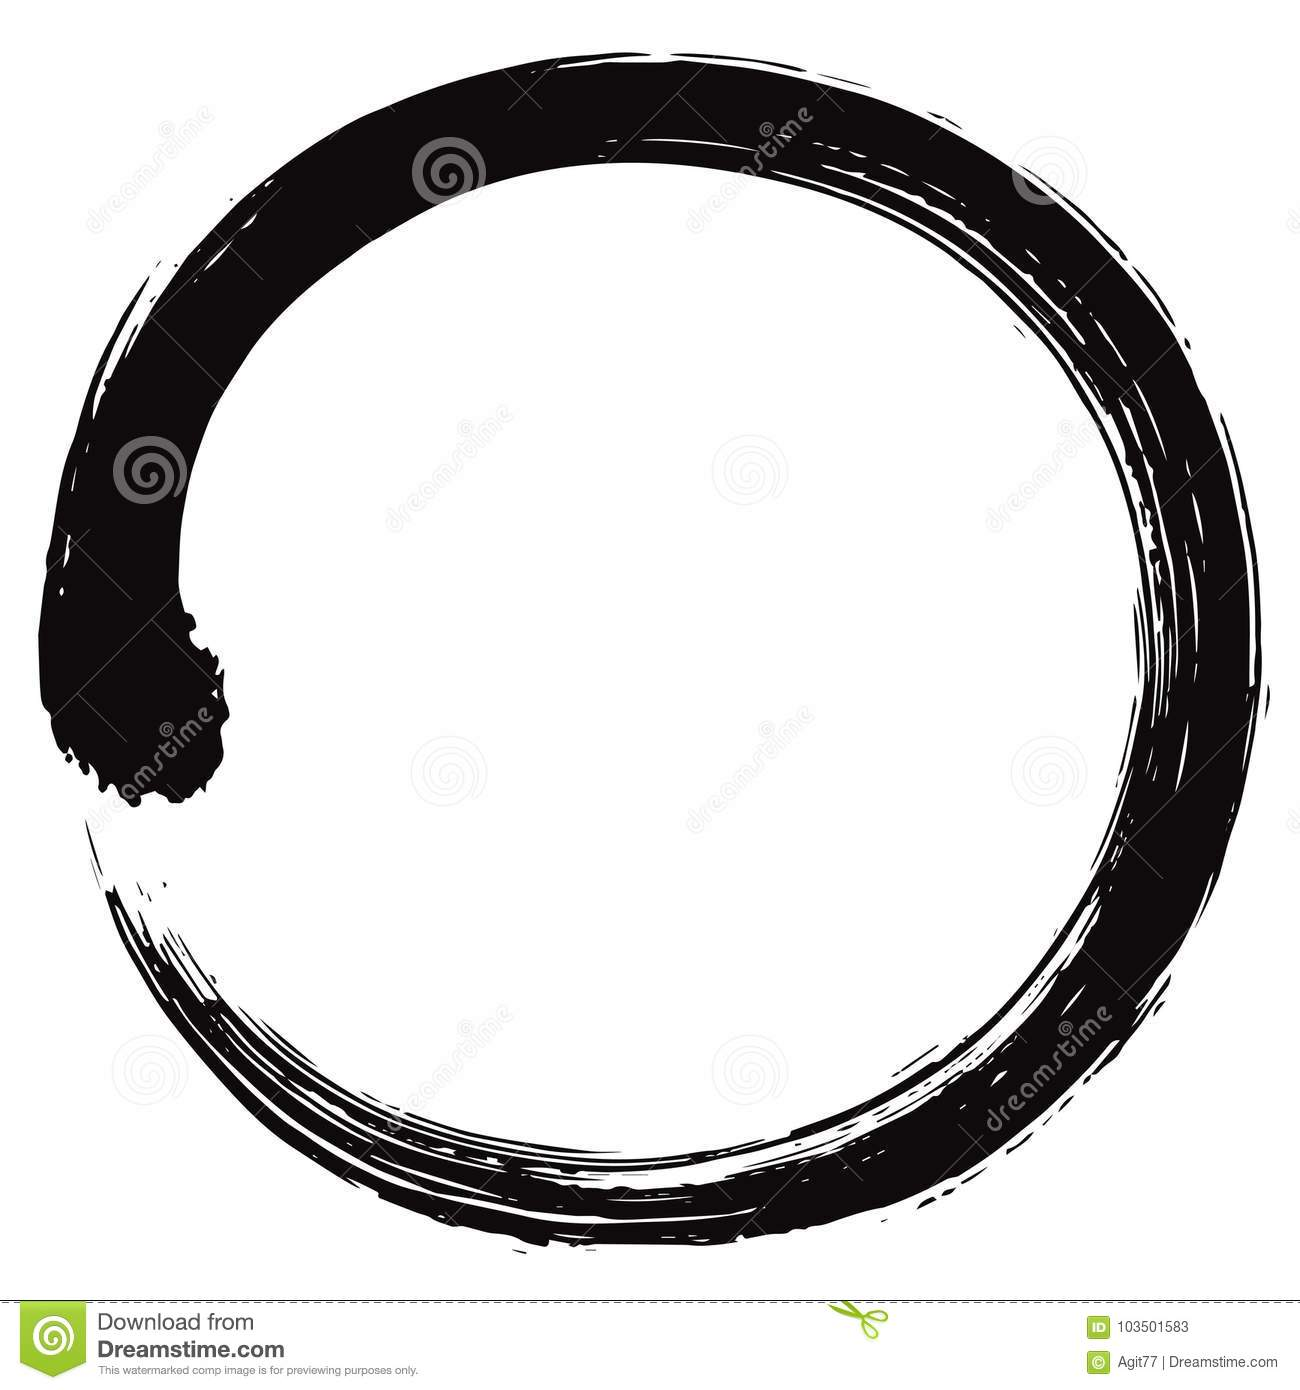 Japan Enso Zen Circle Brush Vector